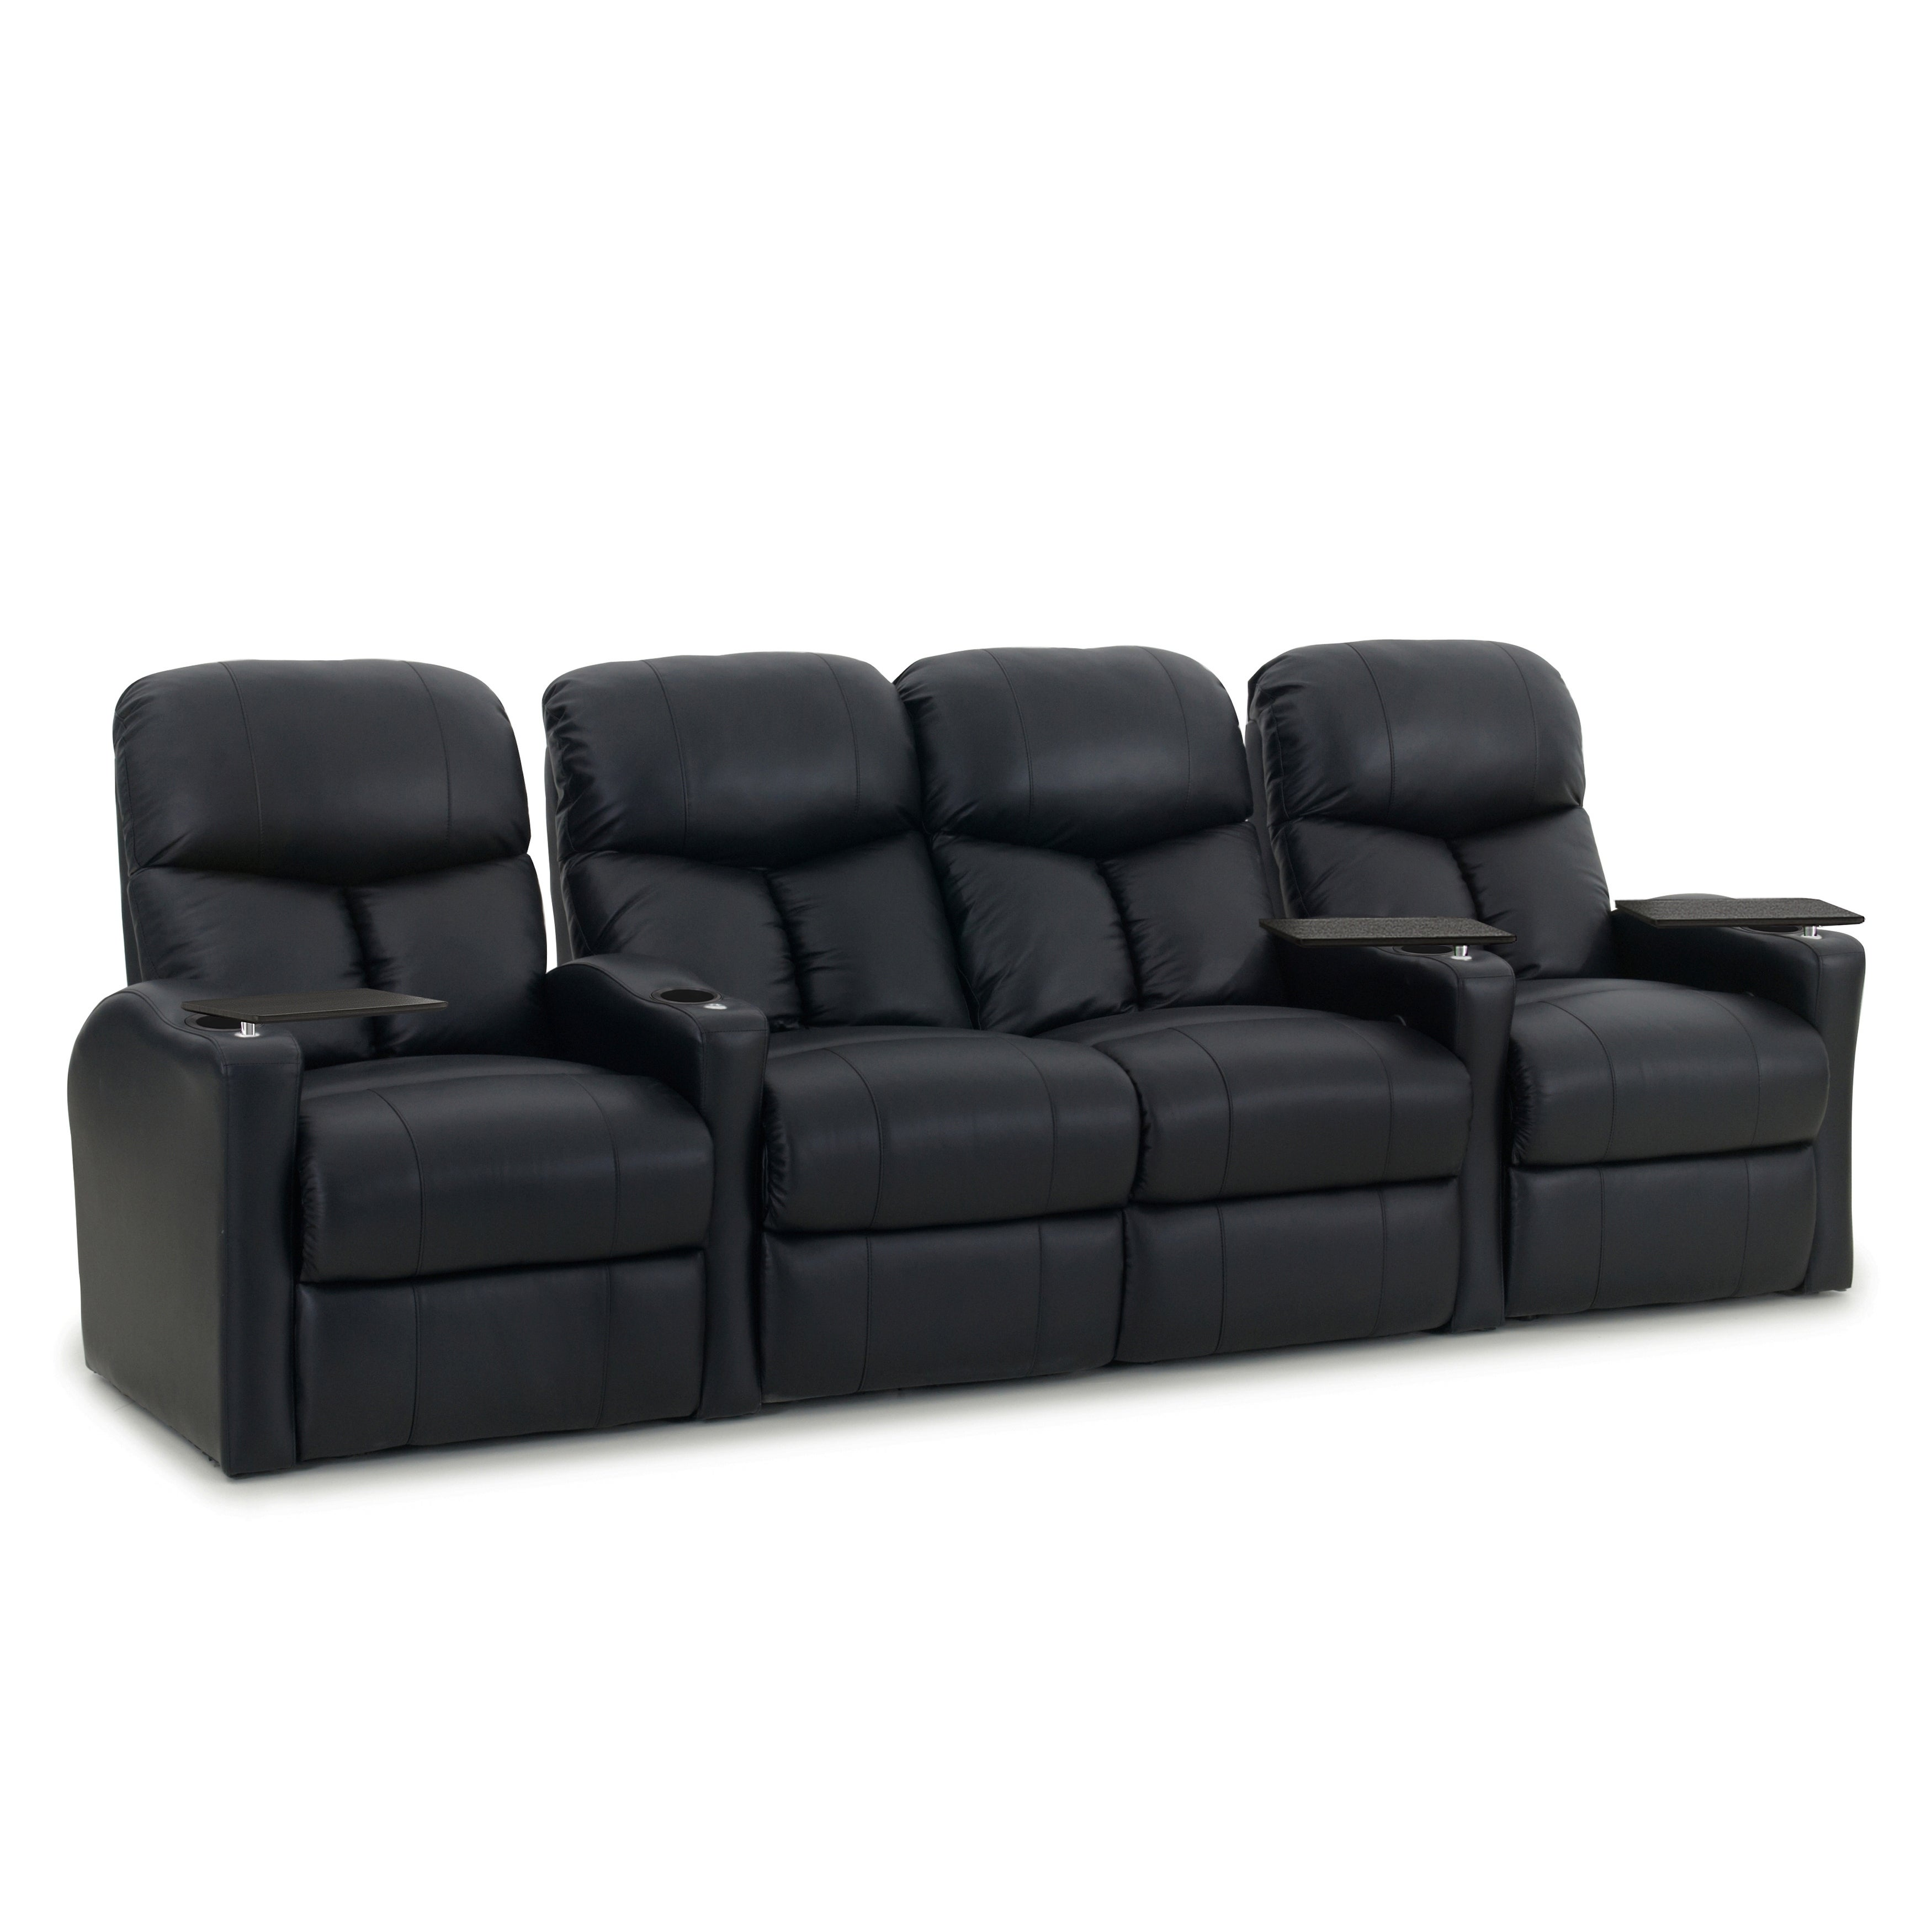 shop octane bolt xs400 power leather home theater seating set row